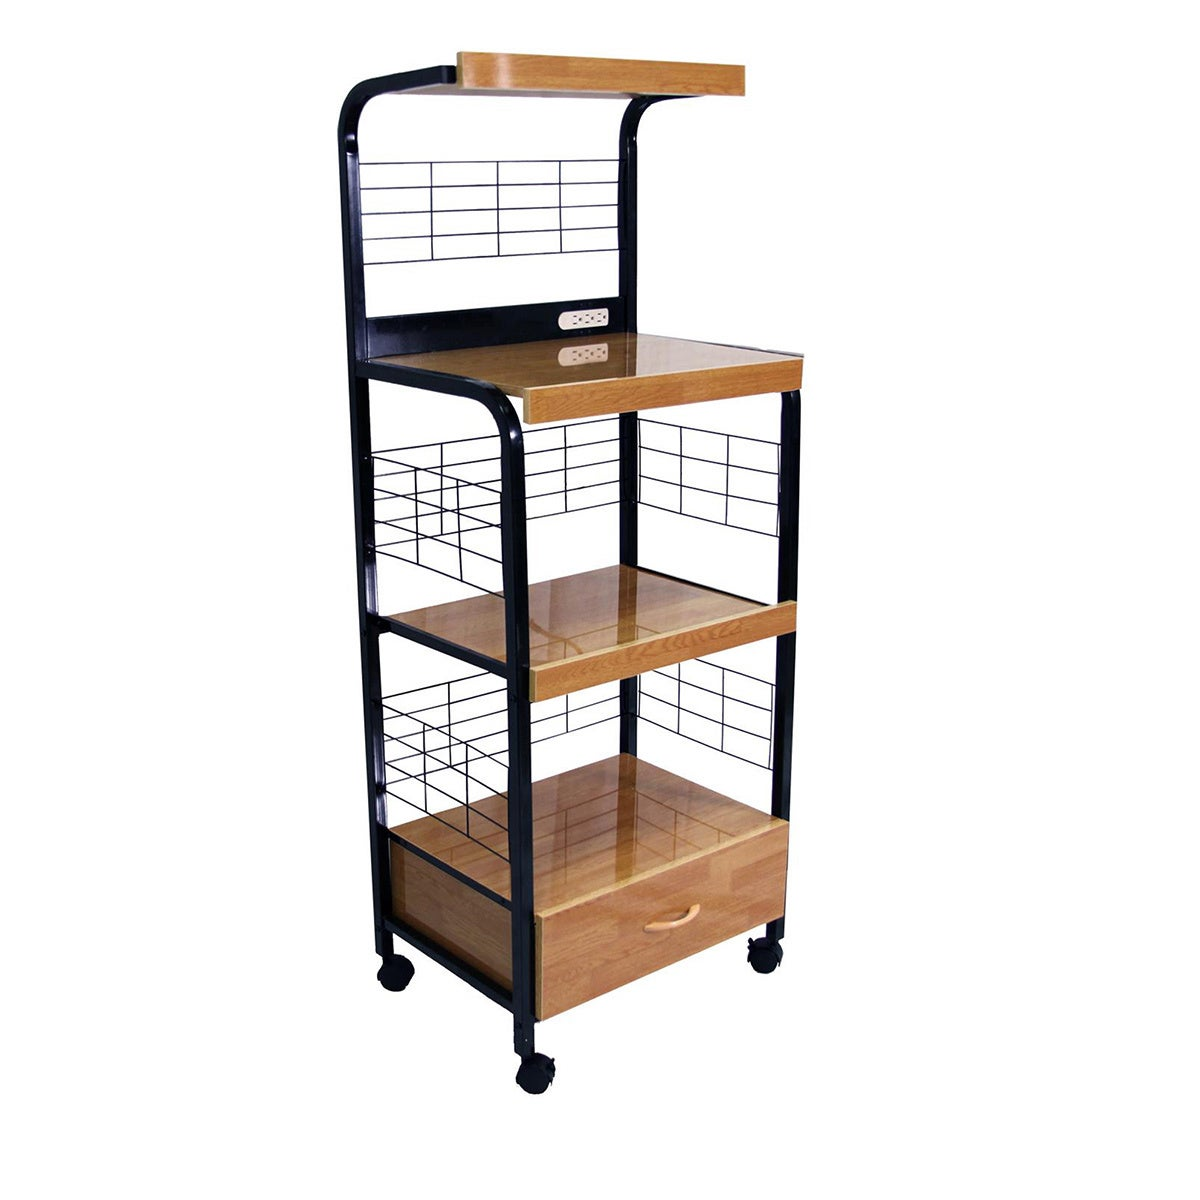 Black Microwave Cart With Outlet 60 Inches High Free Shipping Today 10221070